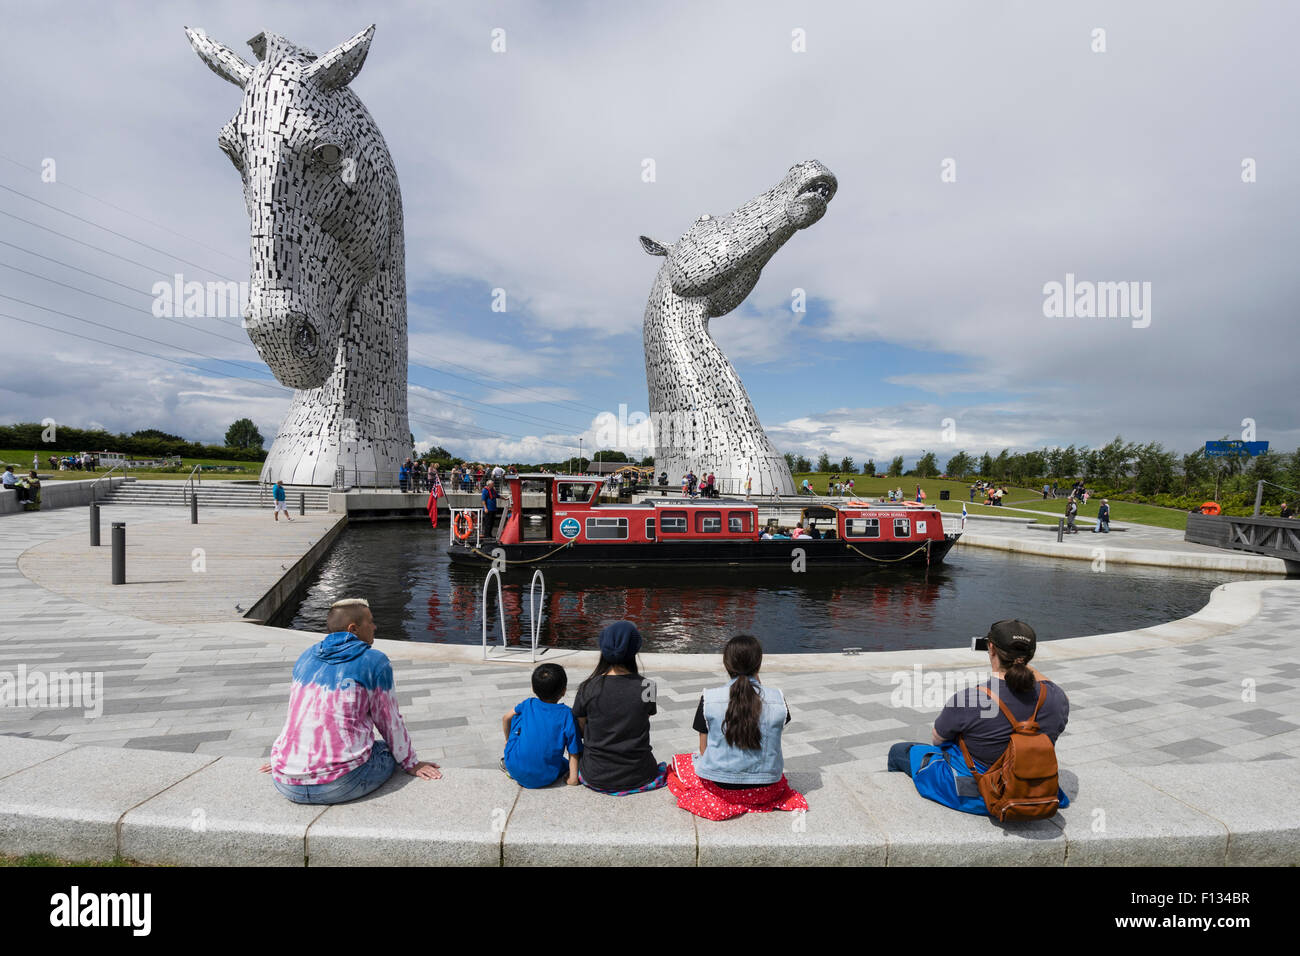 The Kelpies sculpture of two horses at entrance to the  Forth and Clyde Canal at The Helix Park near Falkirk, Scotland - Stock Image